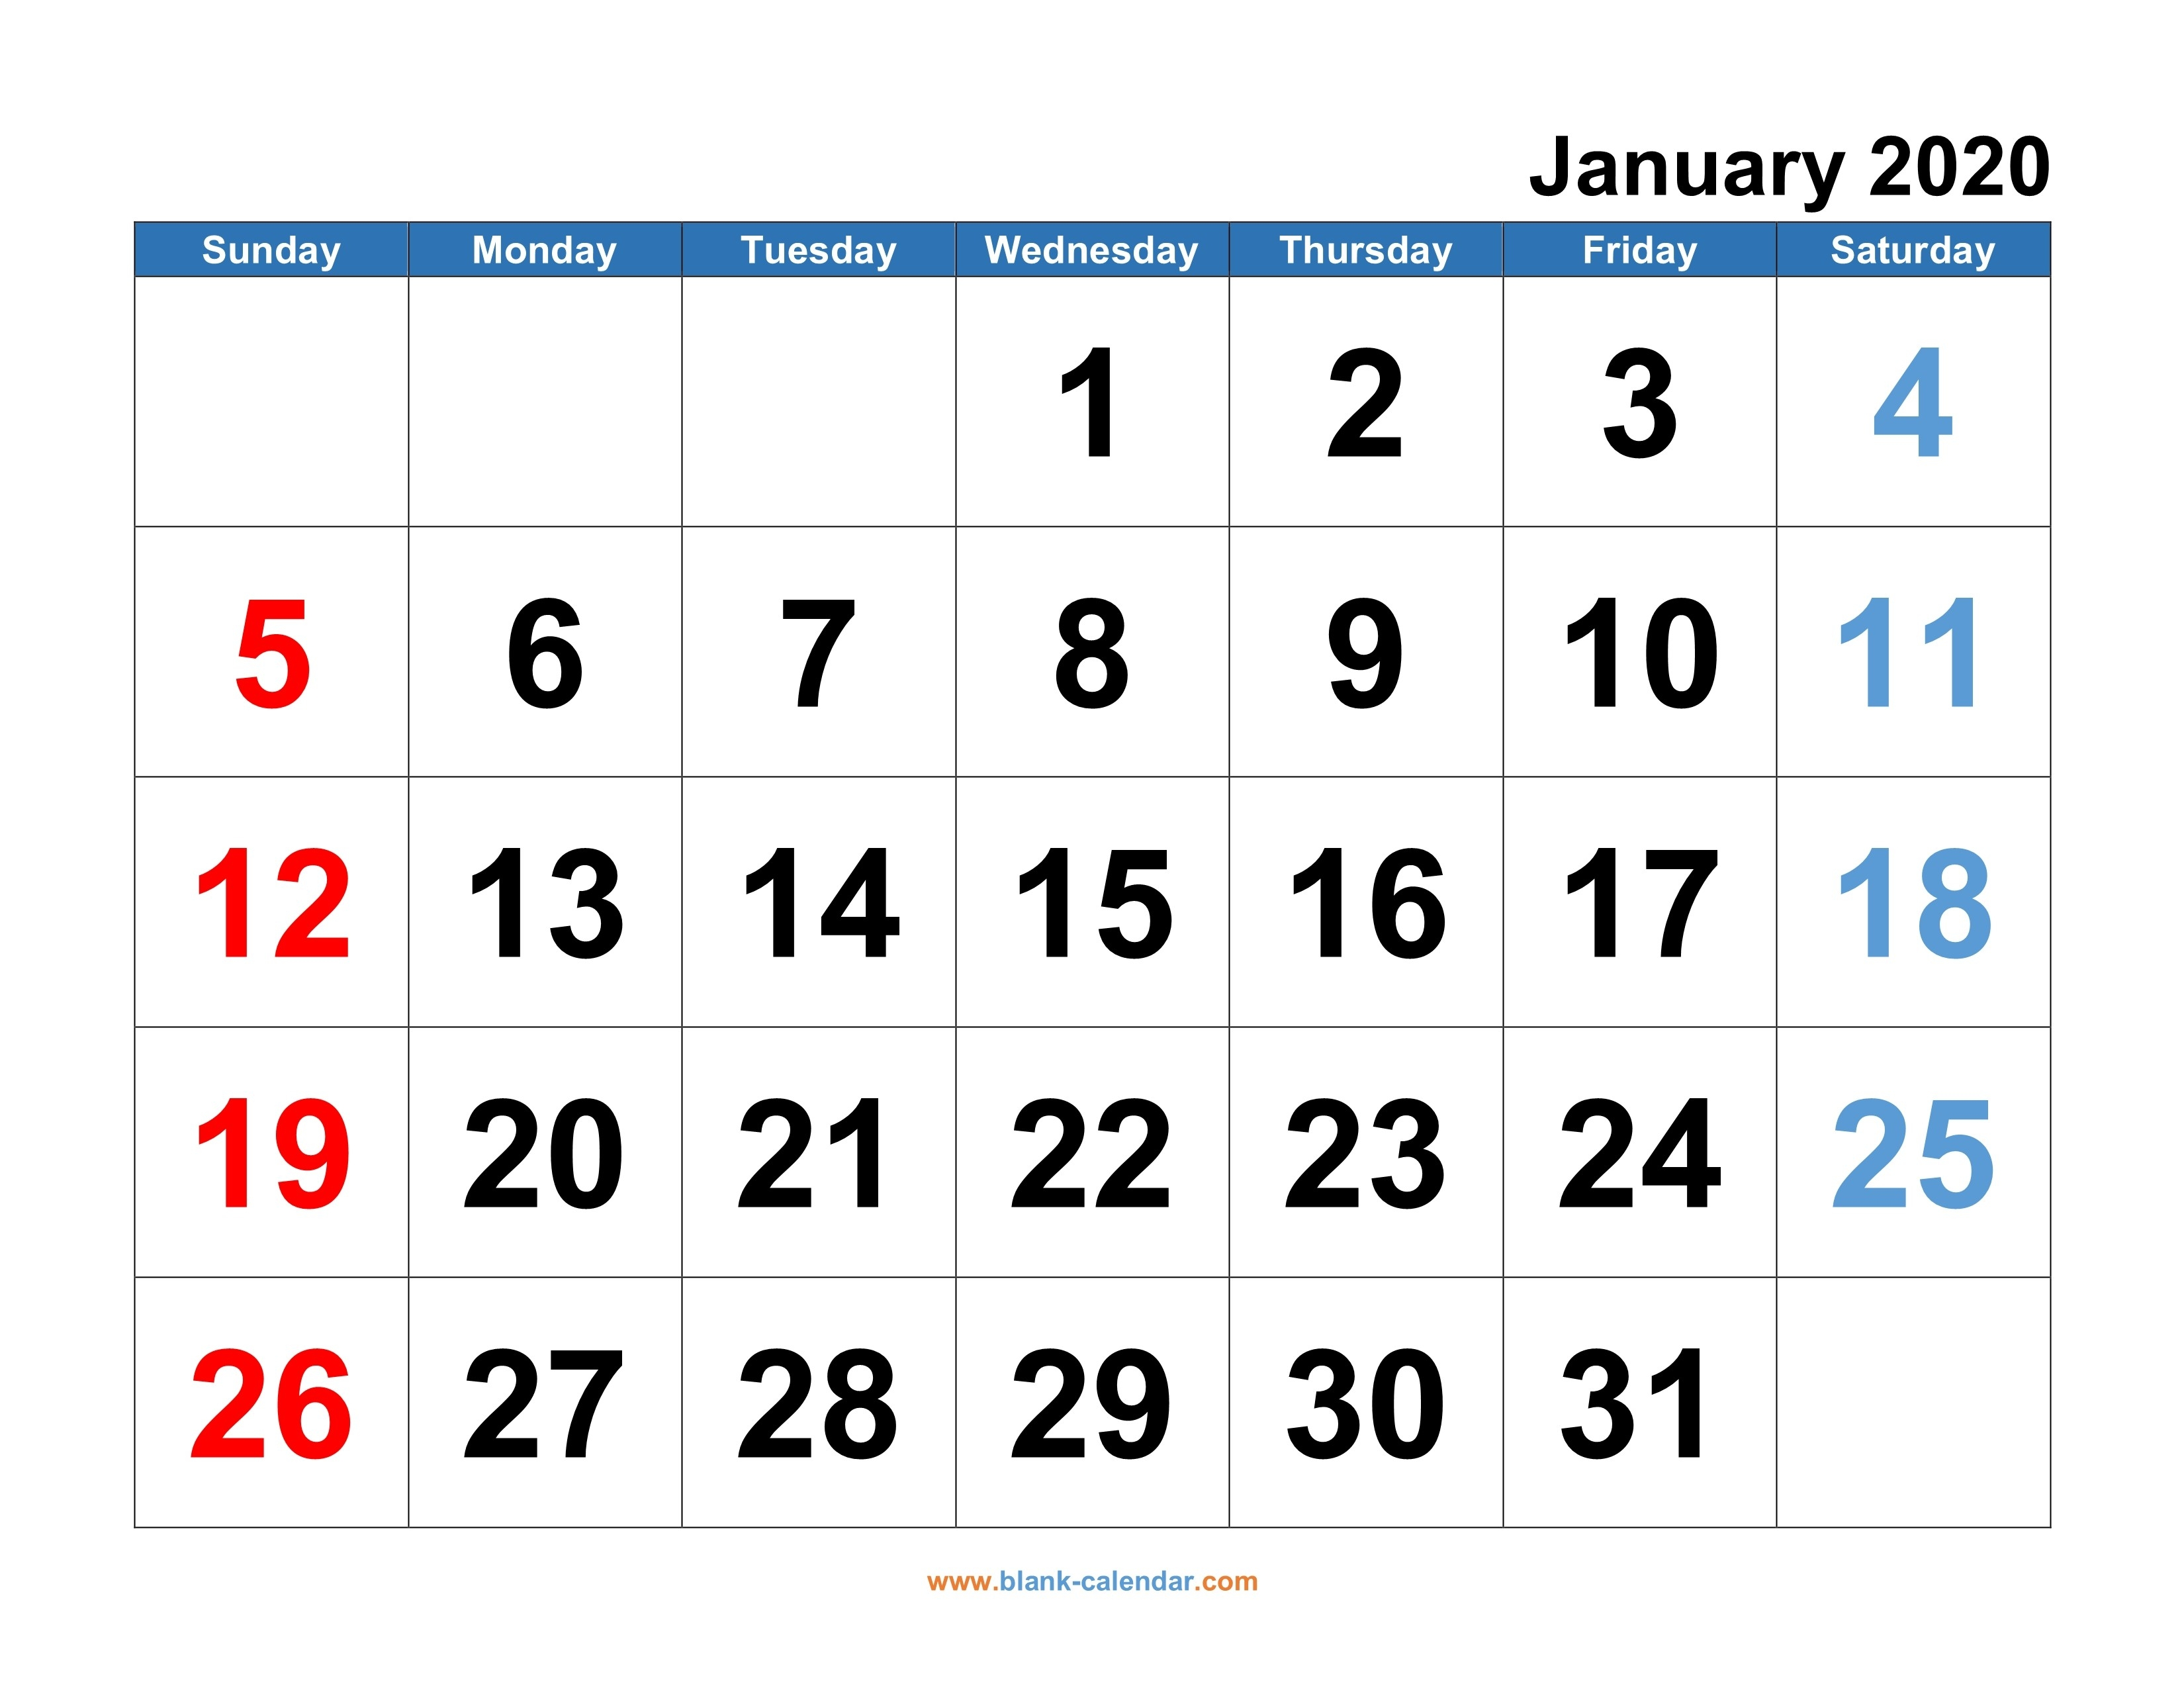 Monthly Calendar 2020 | Free Download, Editable And Printable-Fill In Monthly Calendar 2020